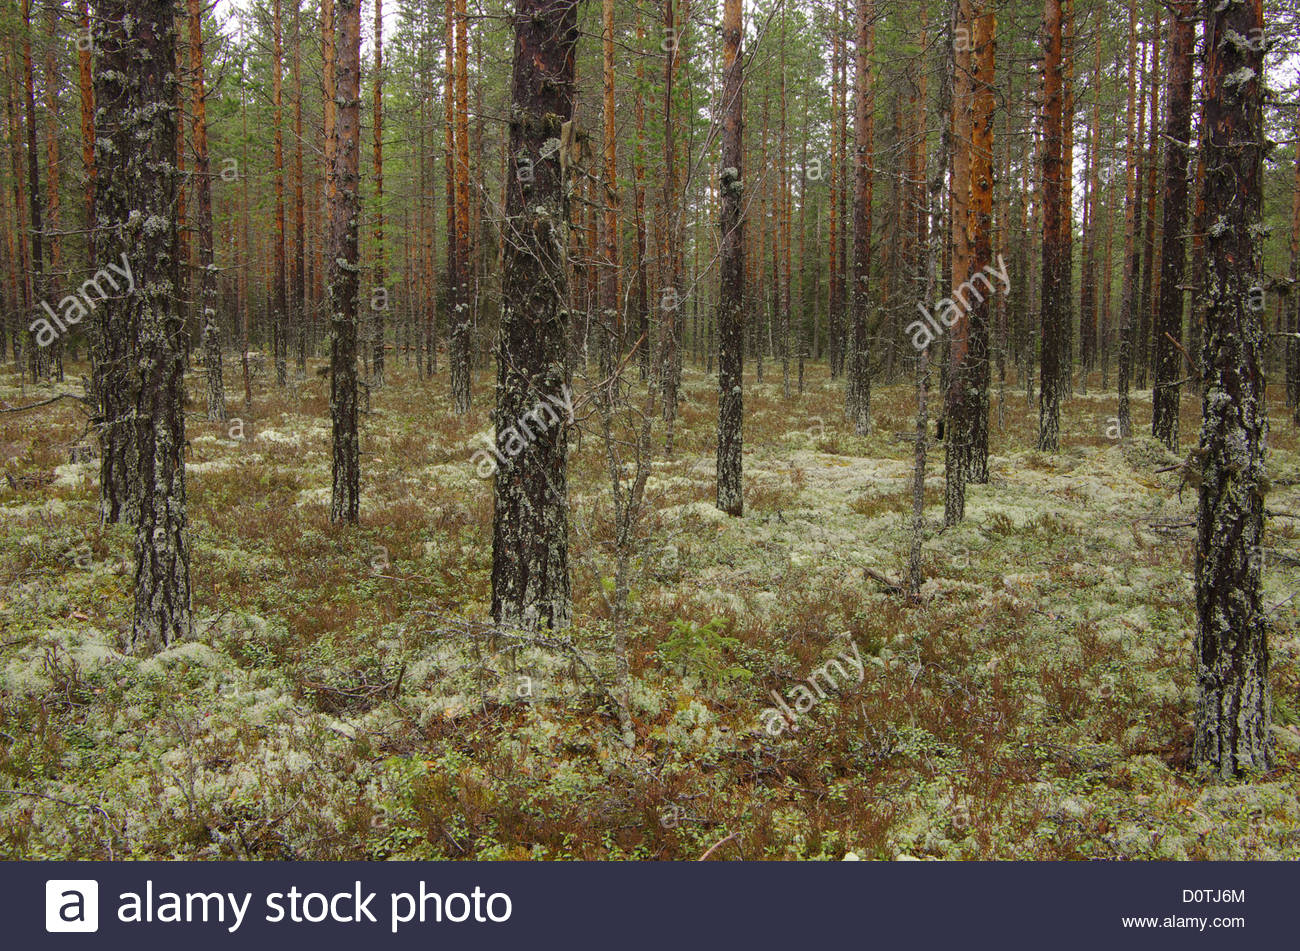 Europe, Sweden, Hamra, landscapes, forest, enchanted forest - Stock Image